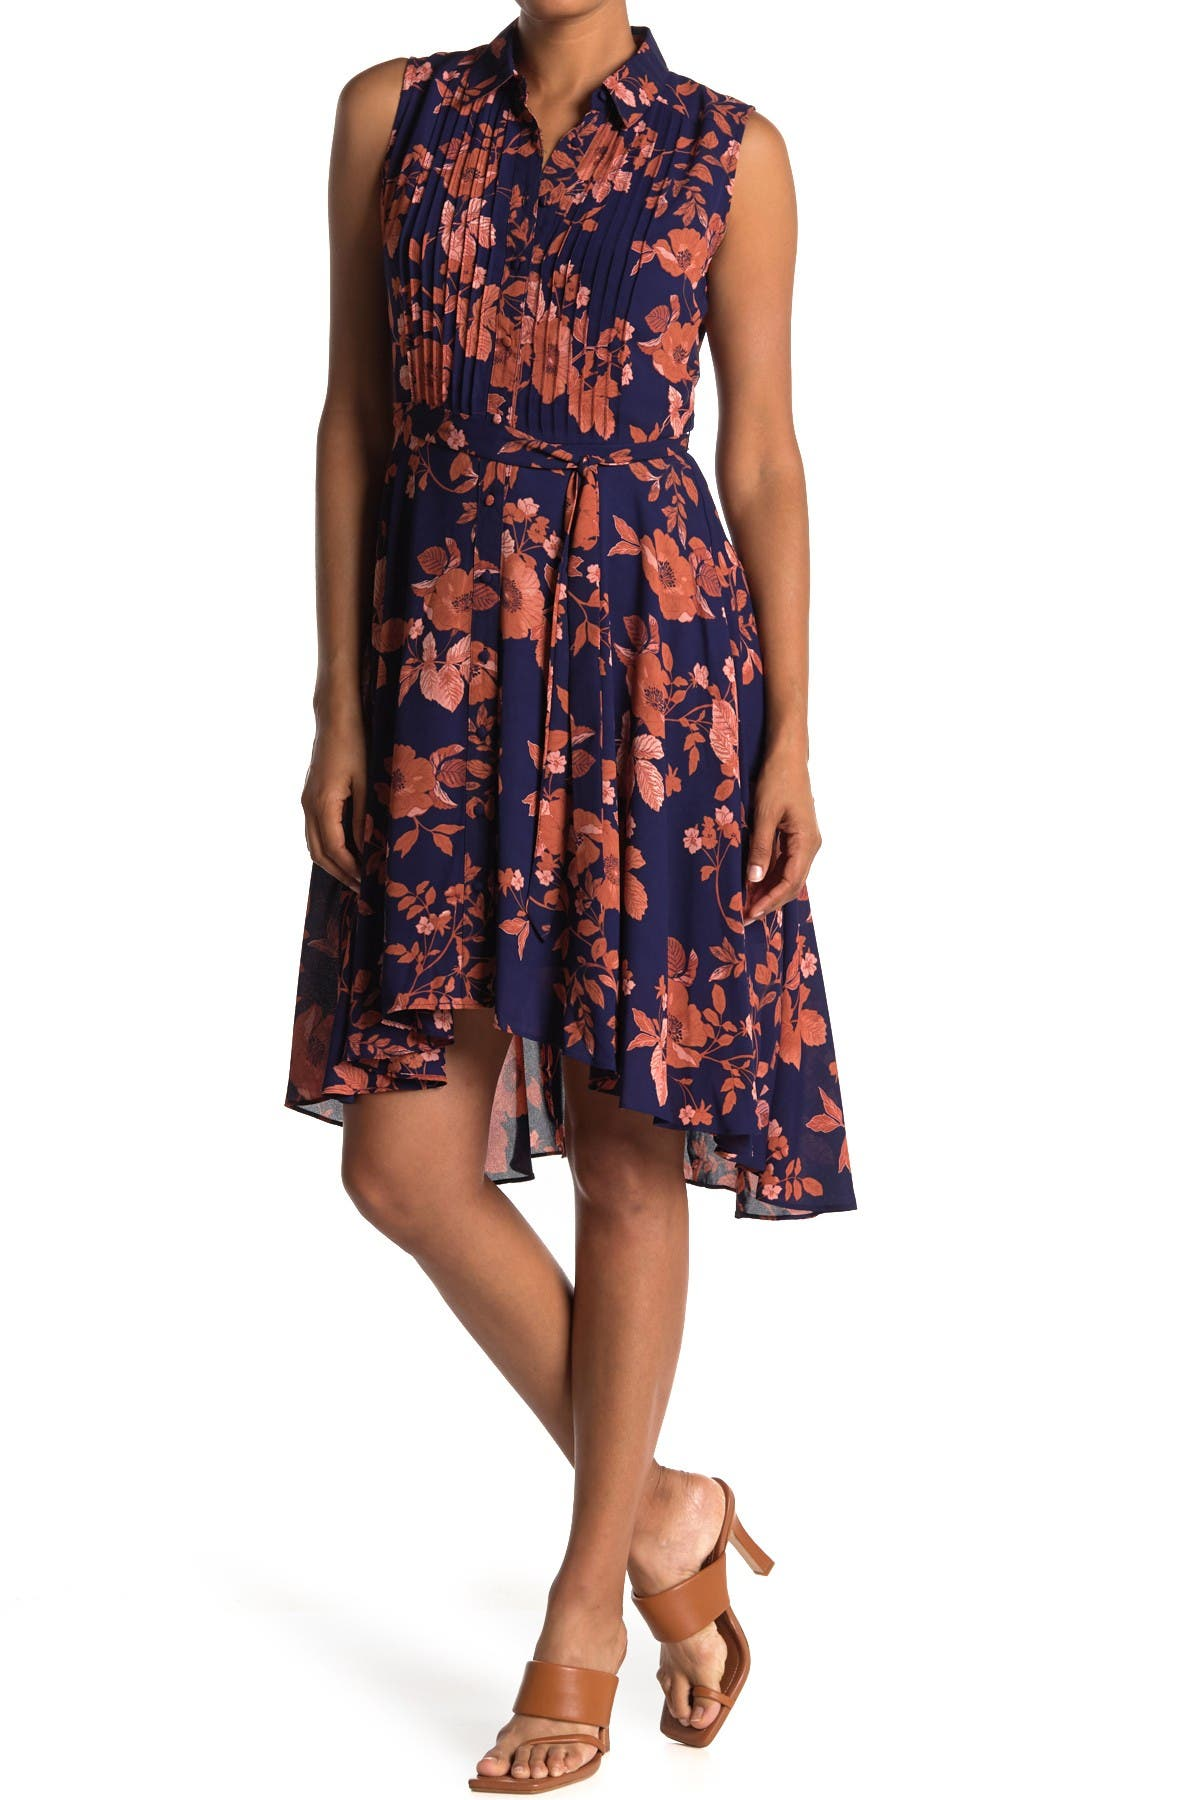 Image of NANETTE nanette lepore Pintuck Pleated High/Low Dress